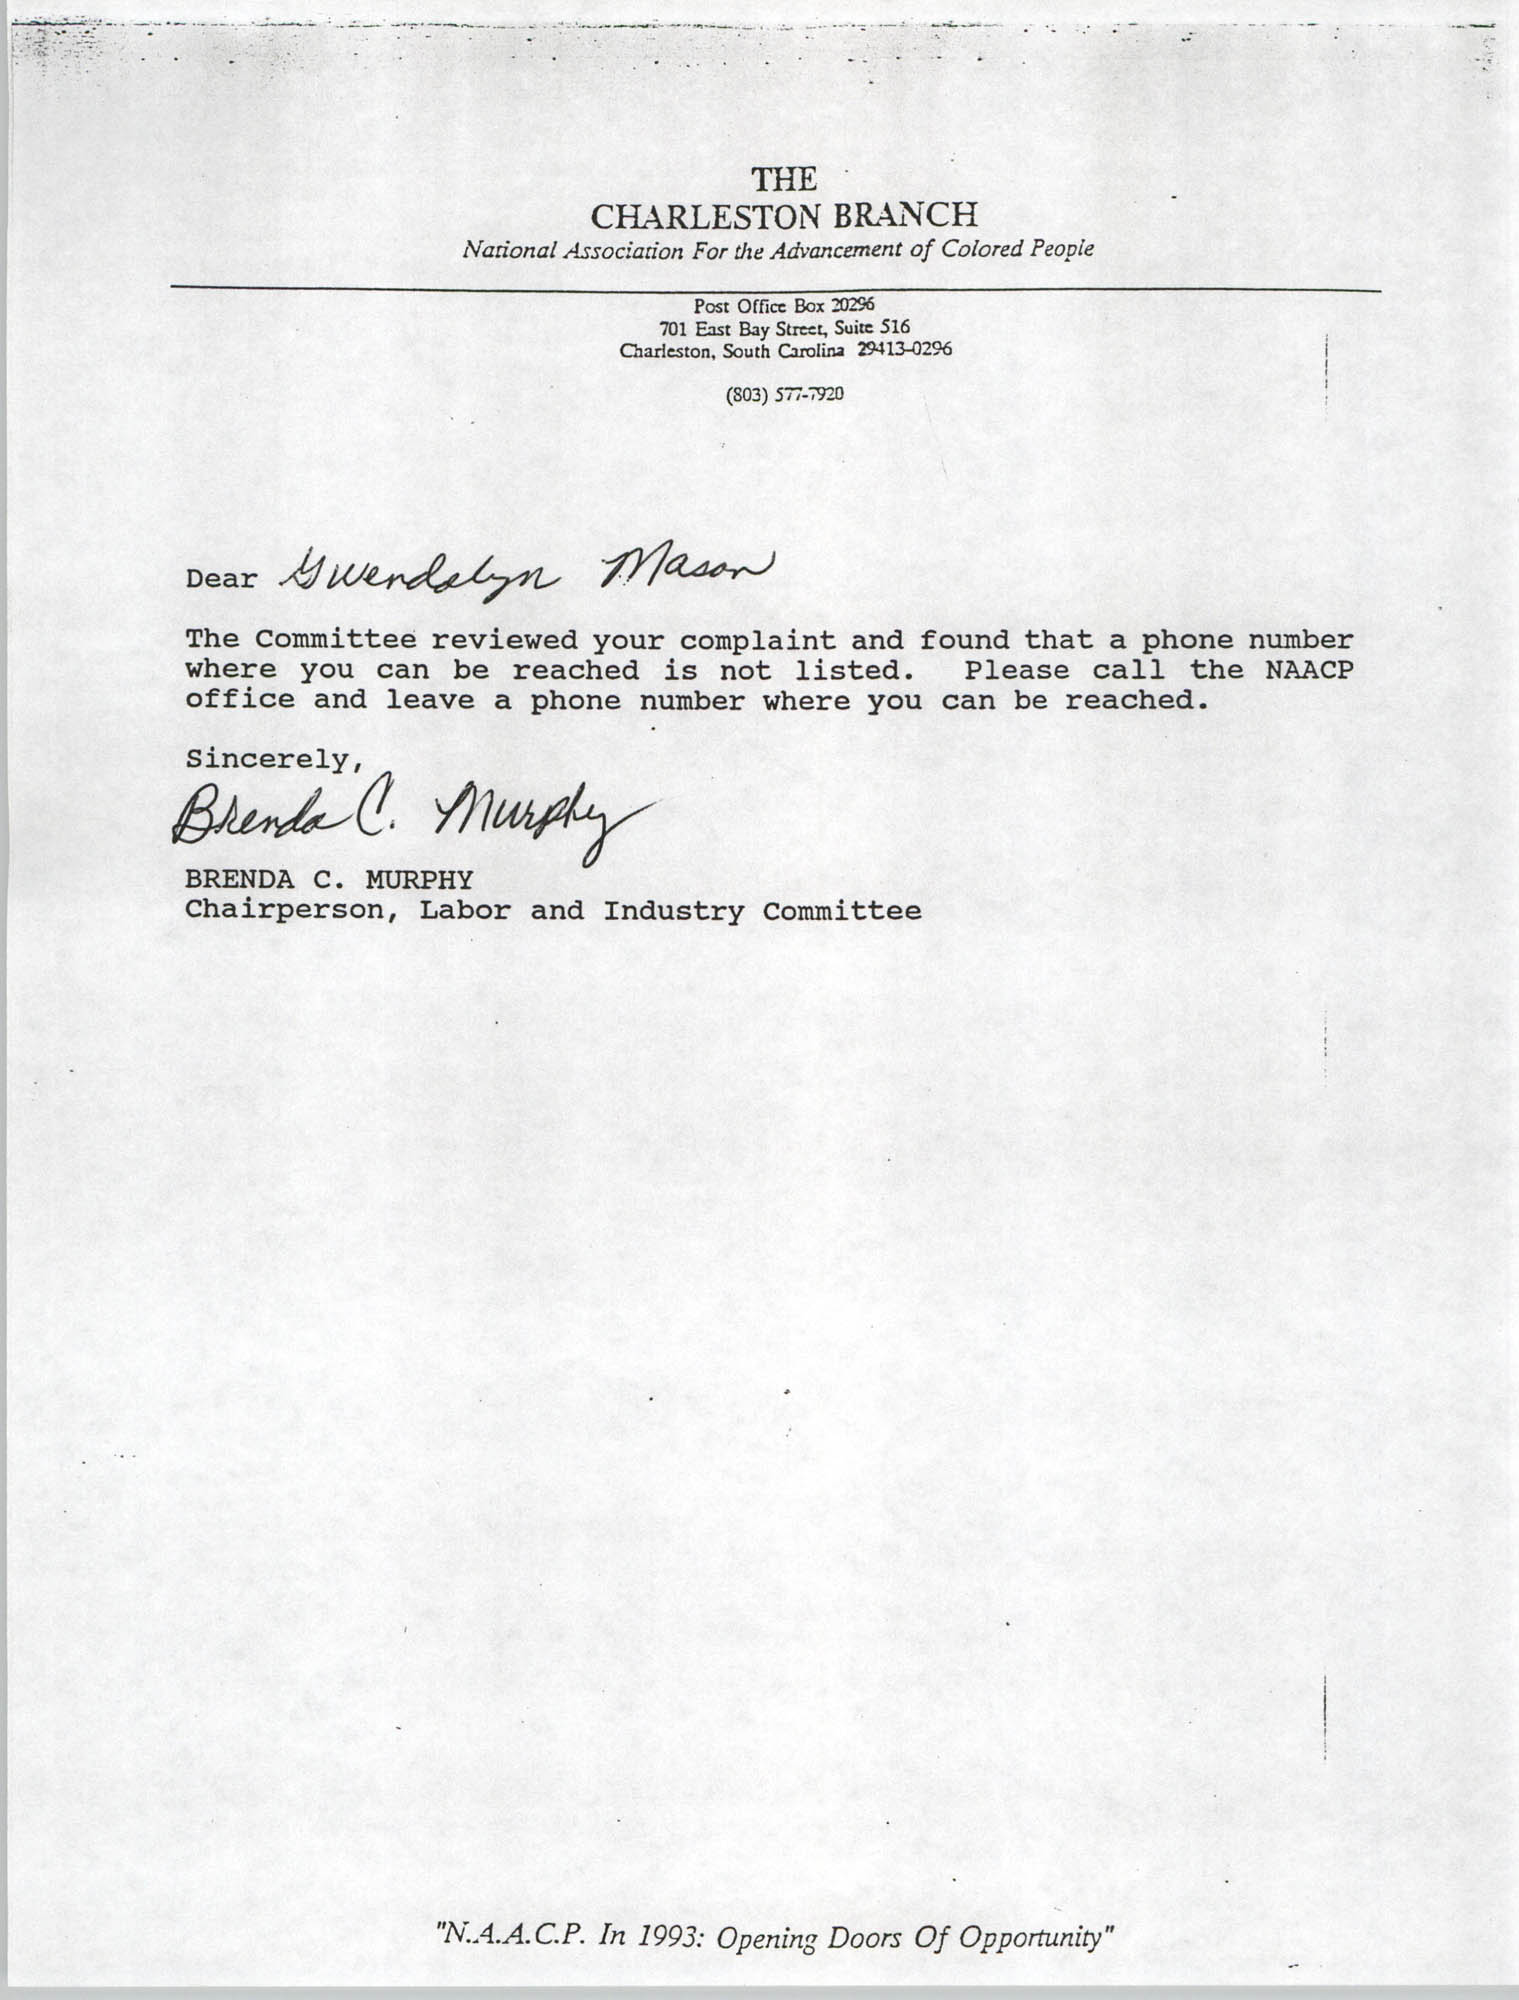 Letter from Brenda C. Murphy to Gwendolyn Mason